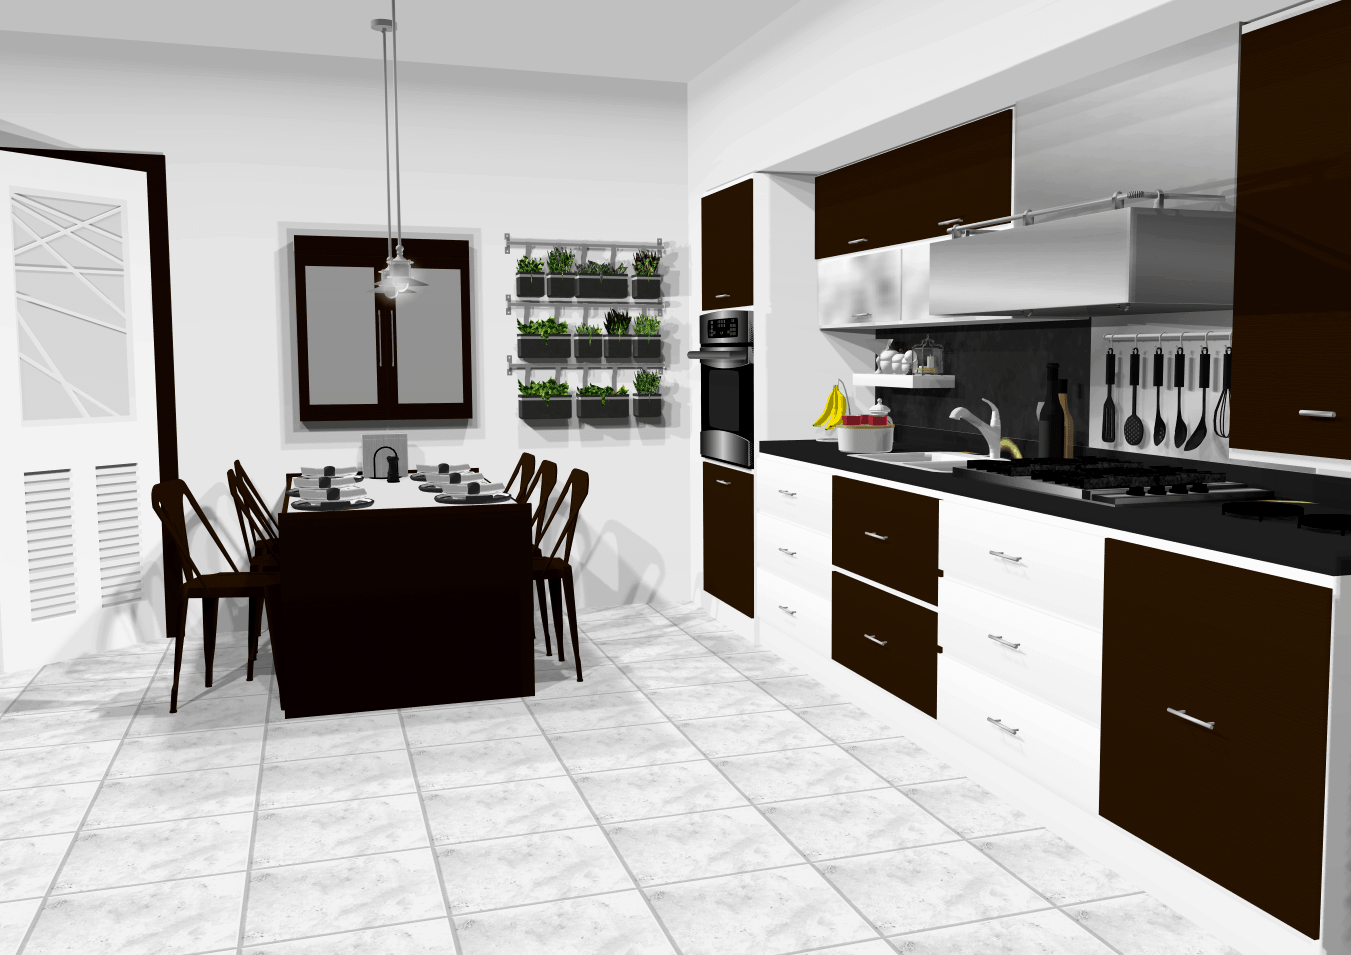 17 Best Online Kitchen Design Software Options in 2019 ...